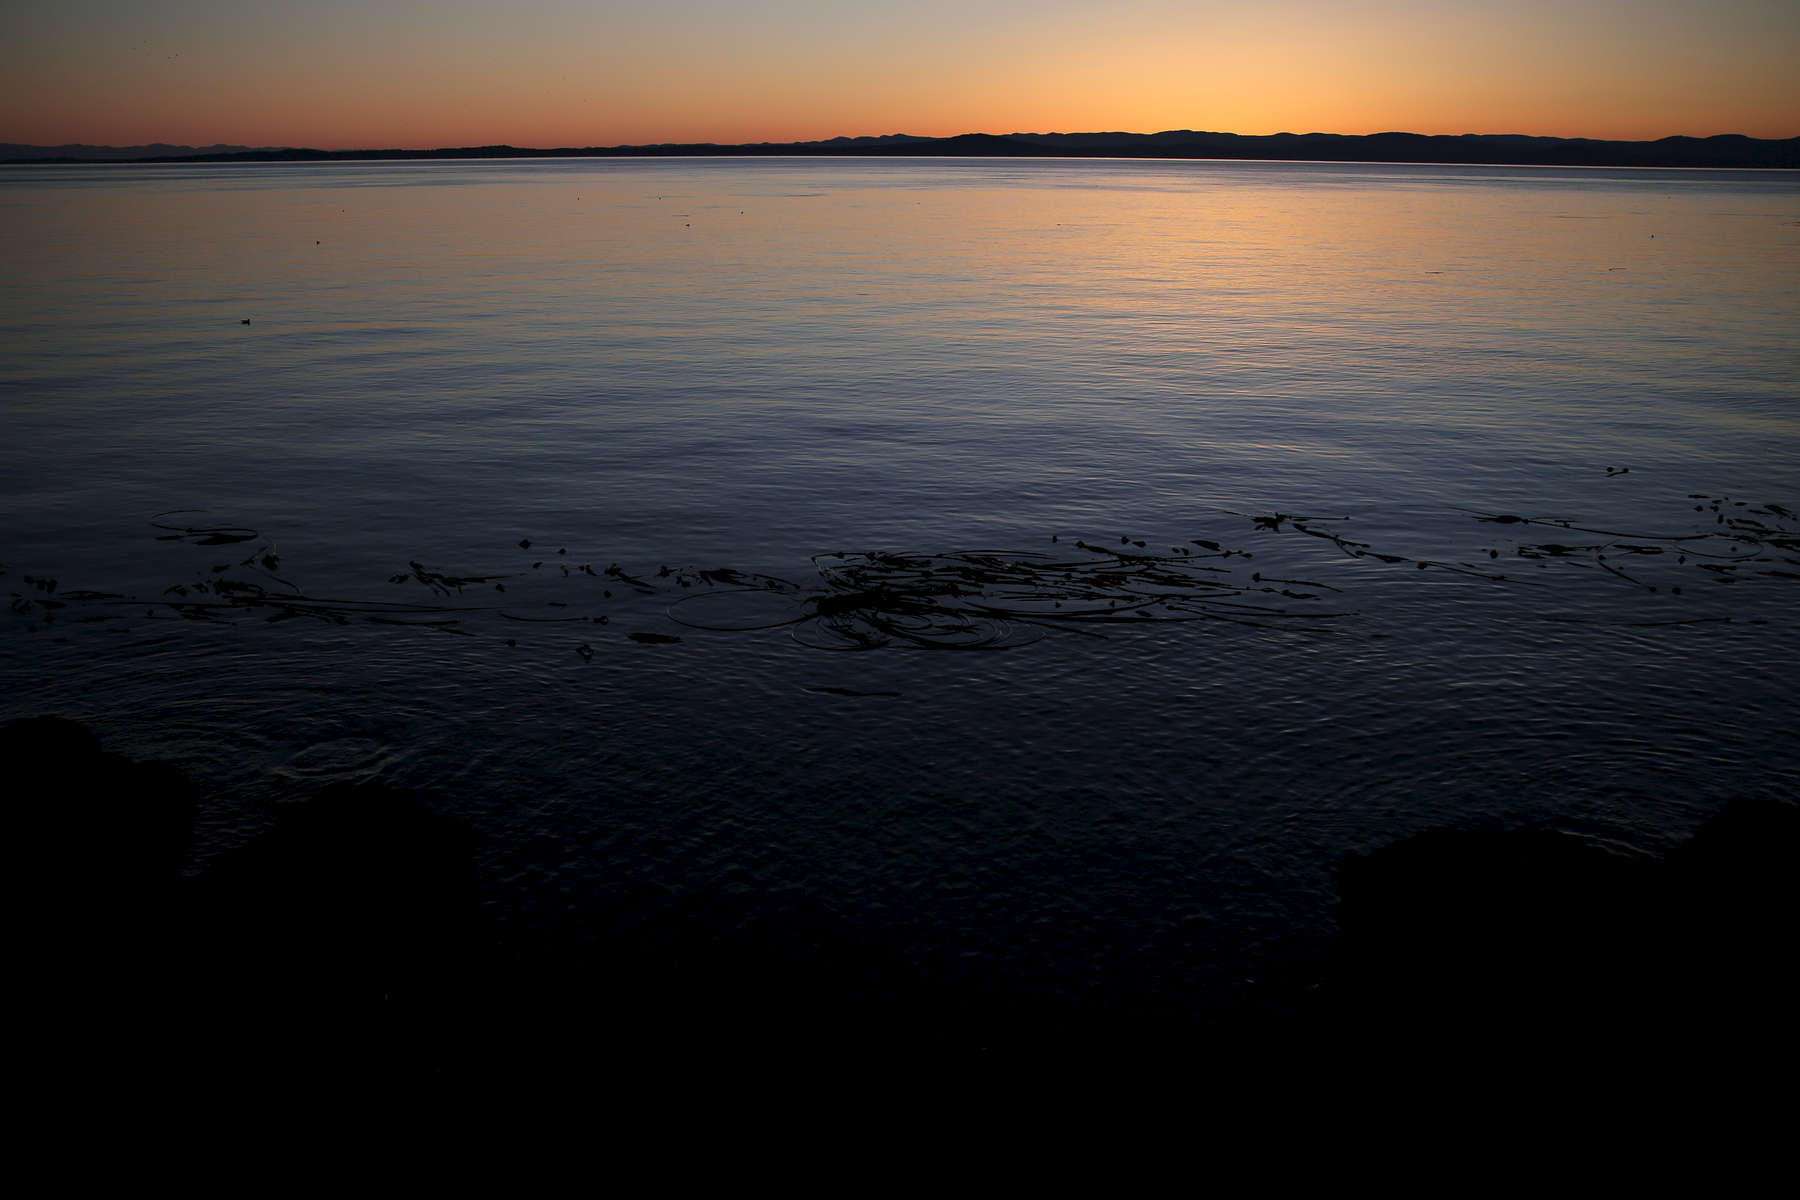 Kelp floats in the water as the setting sun disappears behind the horizon.